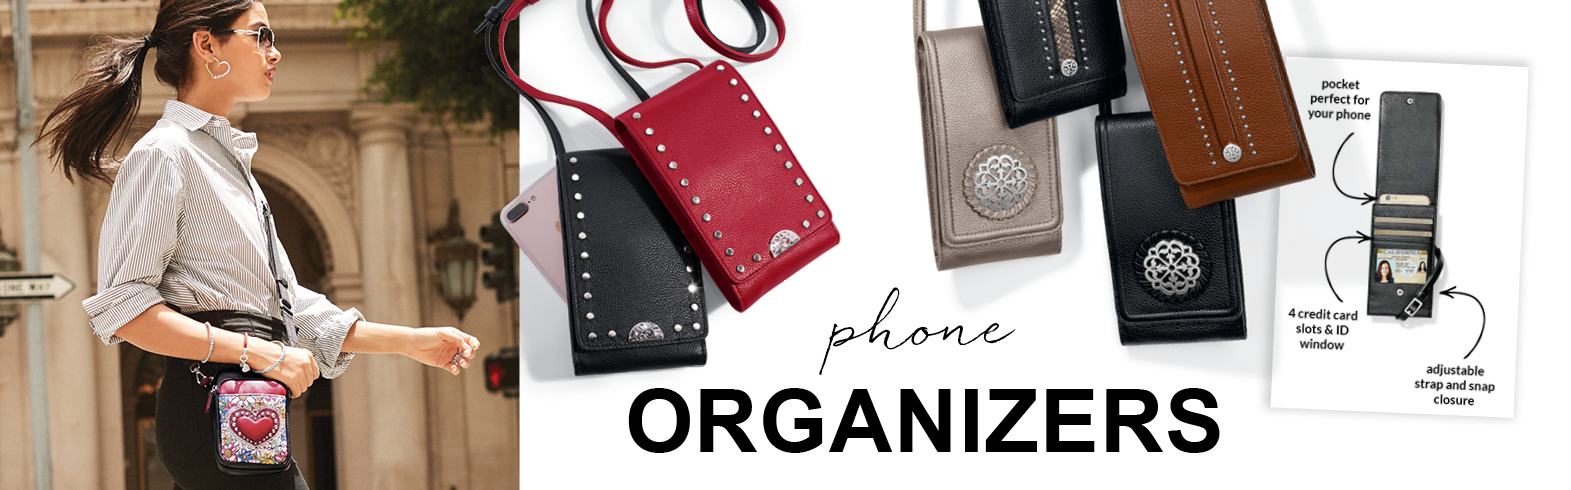 Model Carrying Phone Organizer